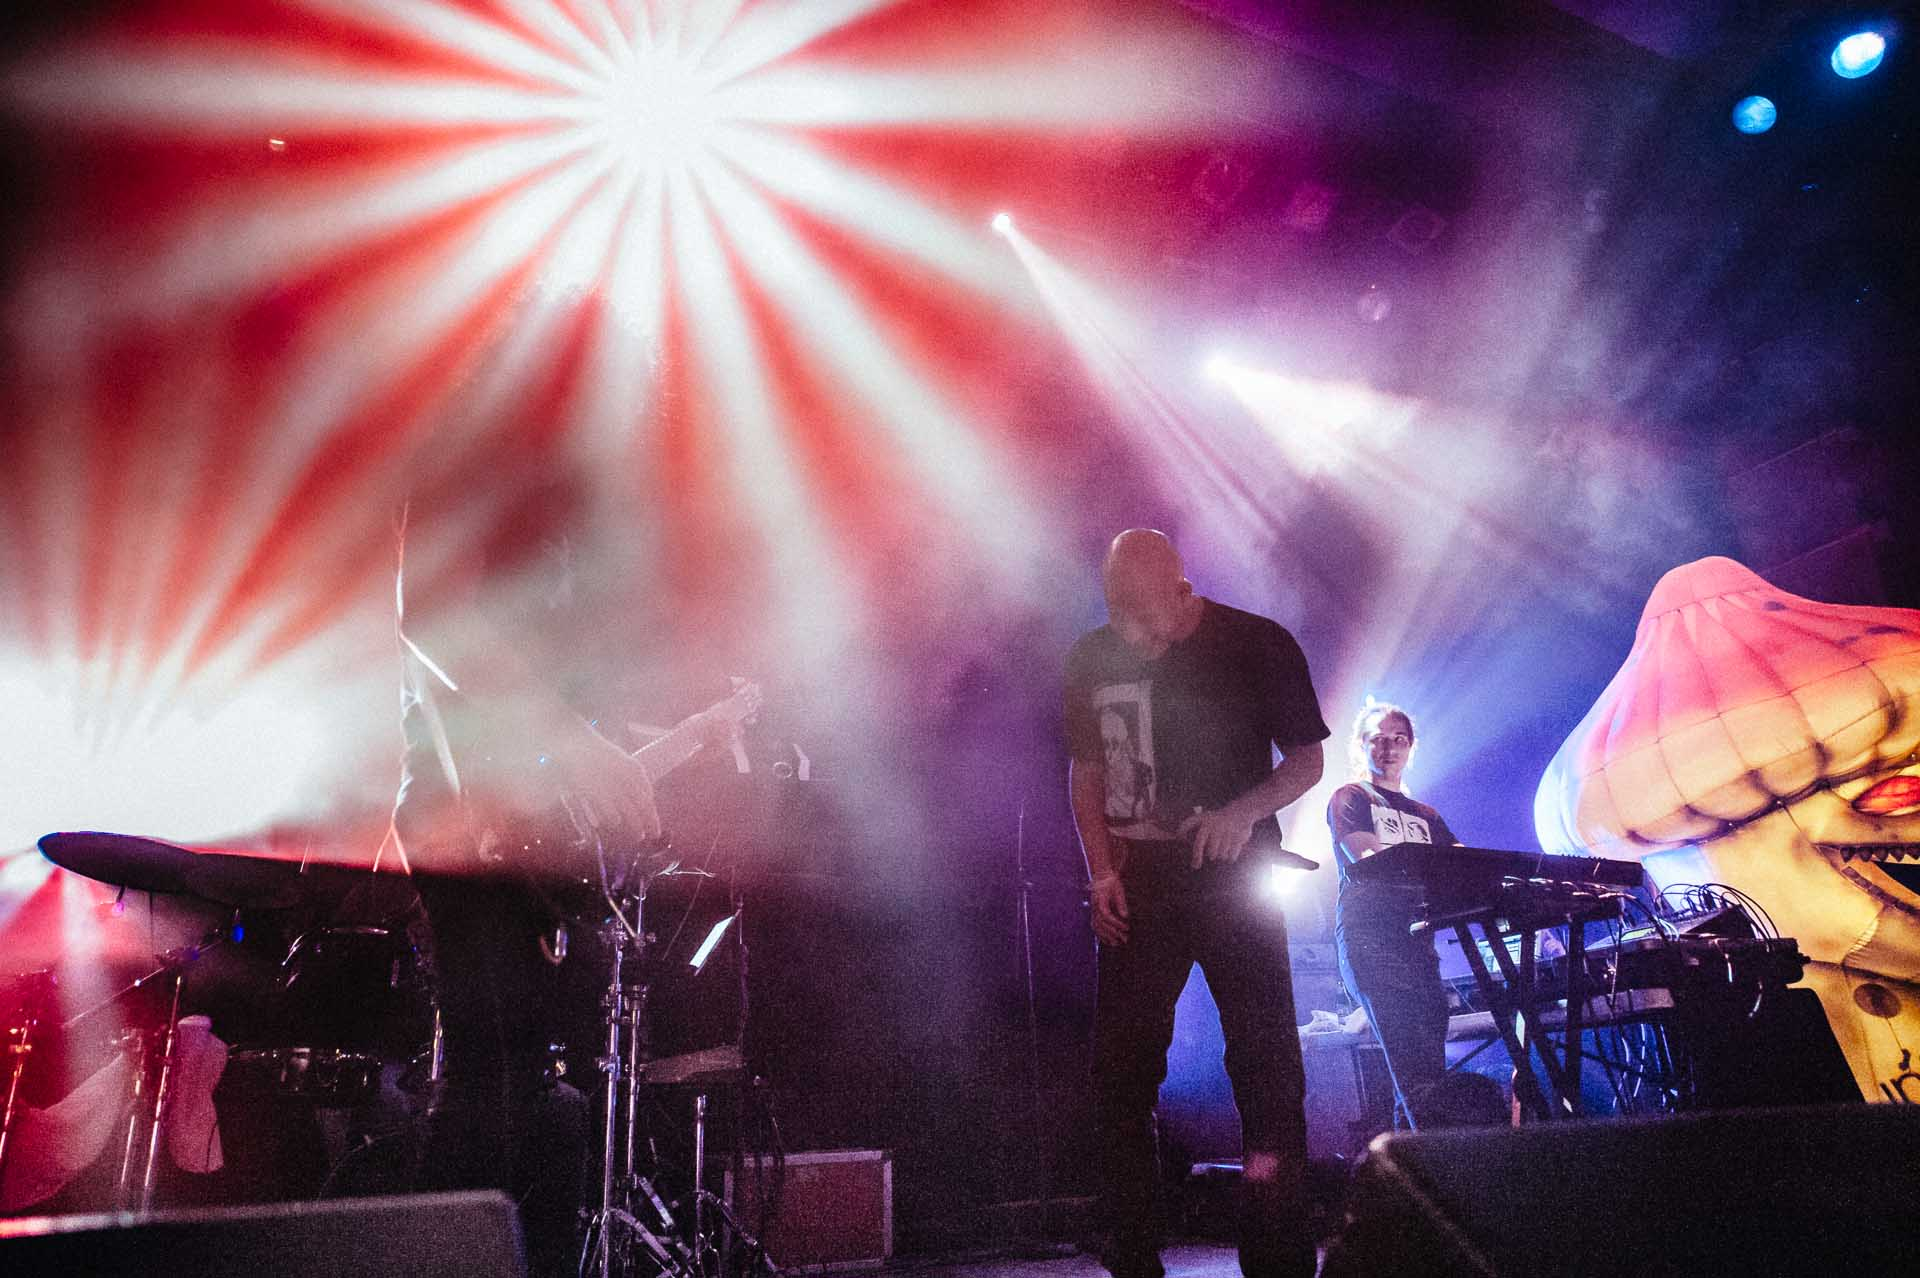 infected_mushroom_live_vogue_theatre_indianapolis_indiana_061011-15